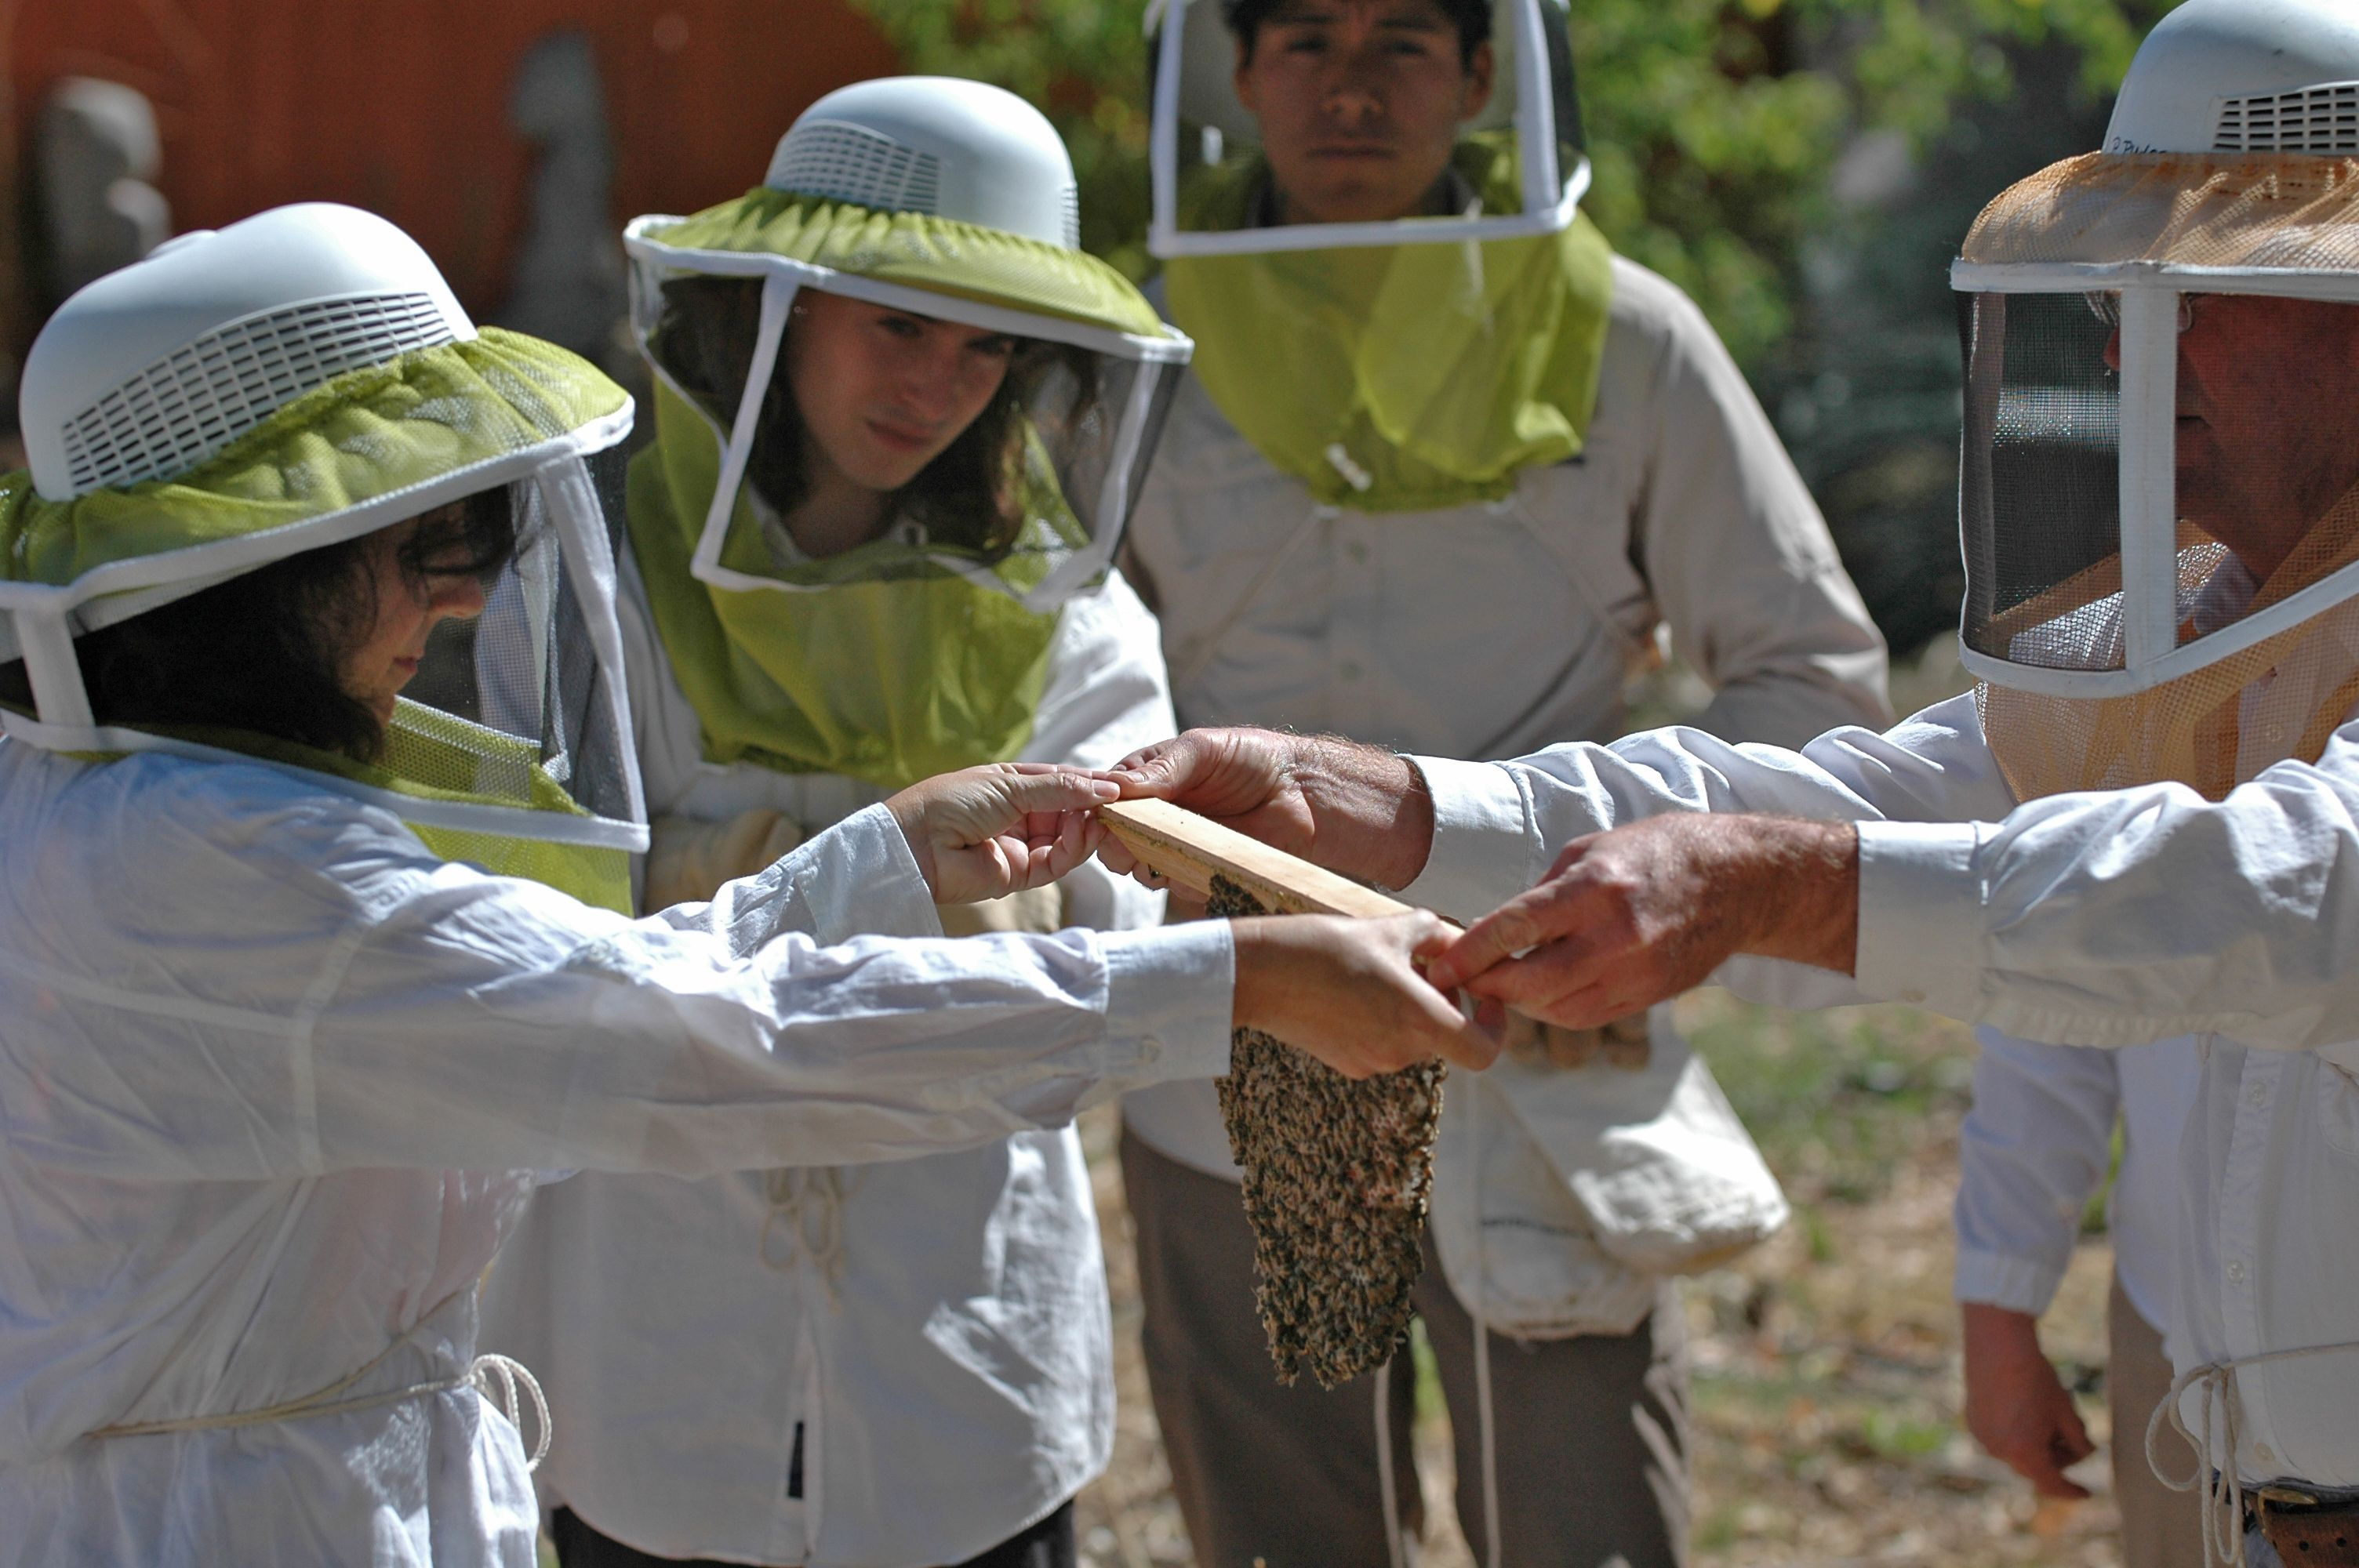 Summer 2014 Beekeeping Workshop in Prescott, Arizona